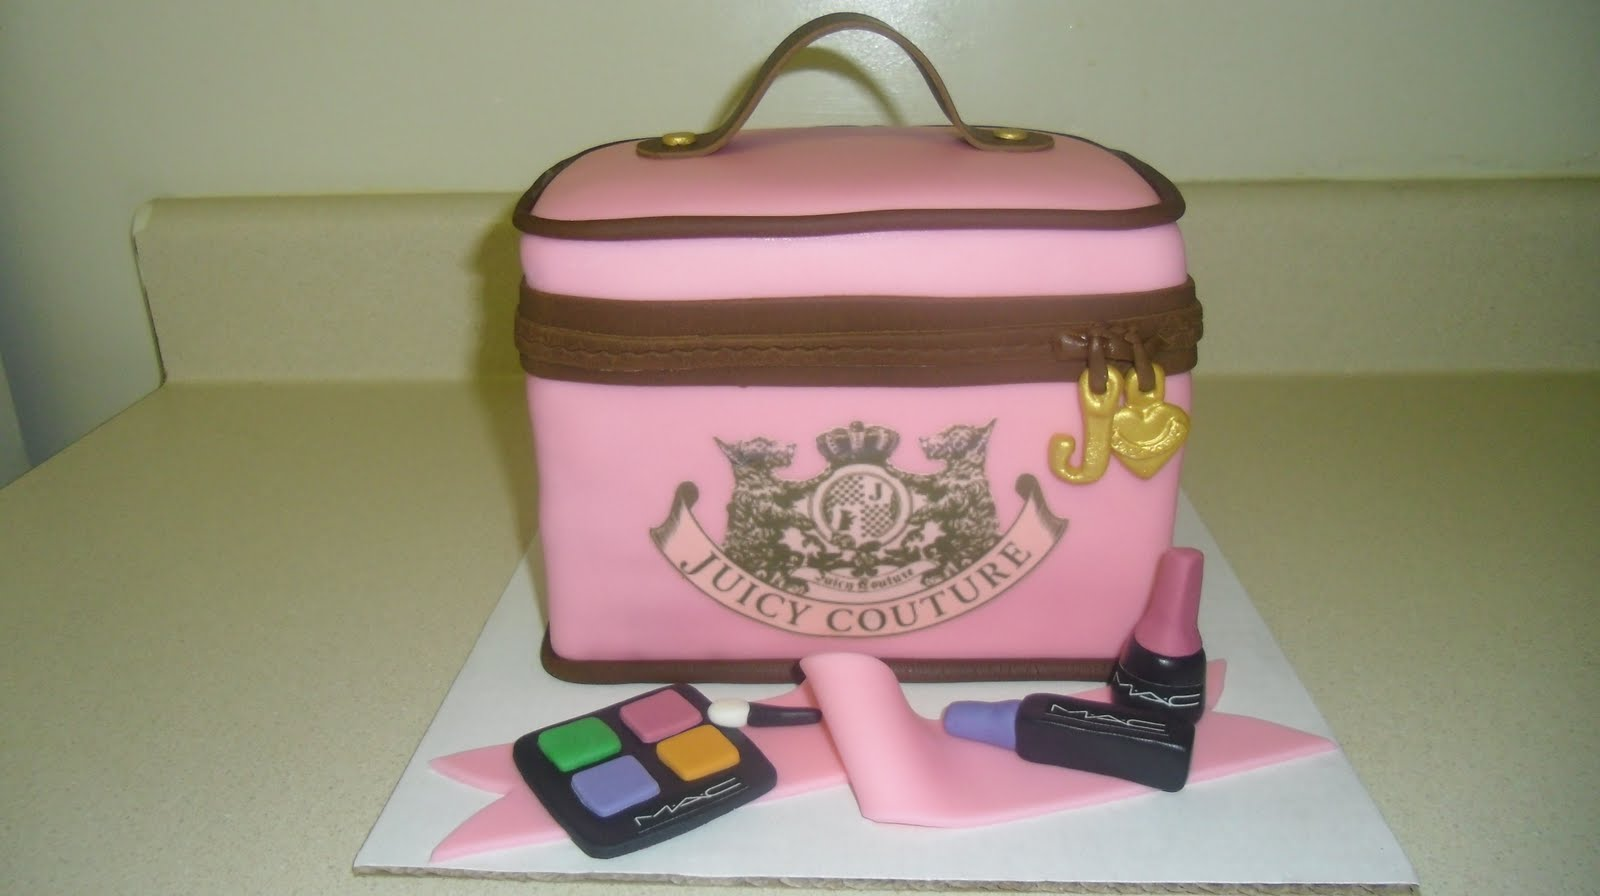 Juicy Couture Cosmetic Bag With Mac Make Up